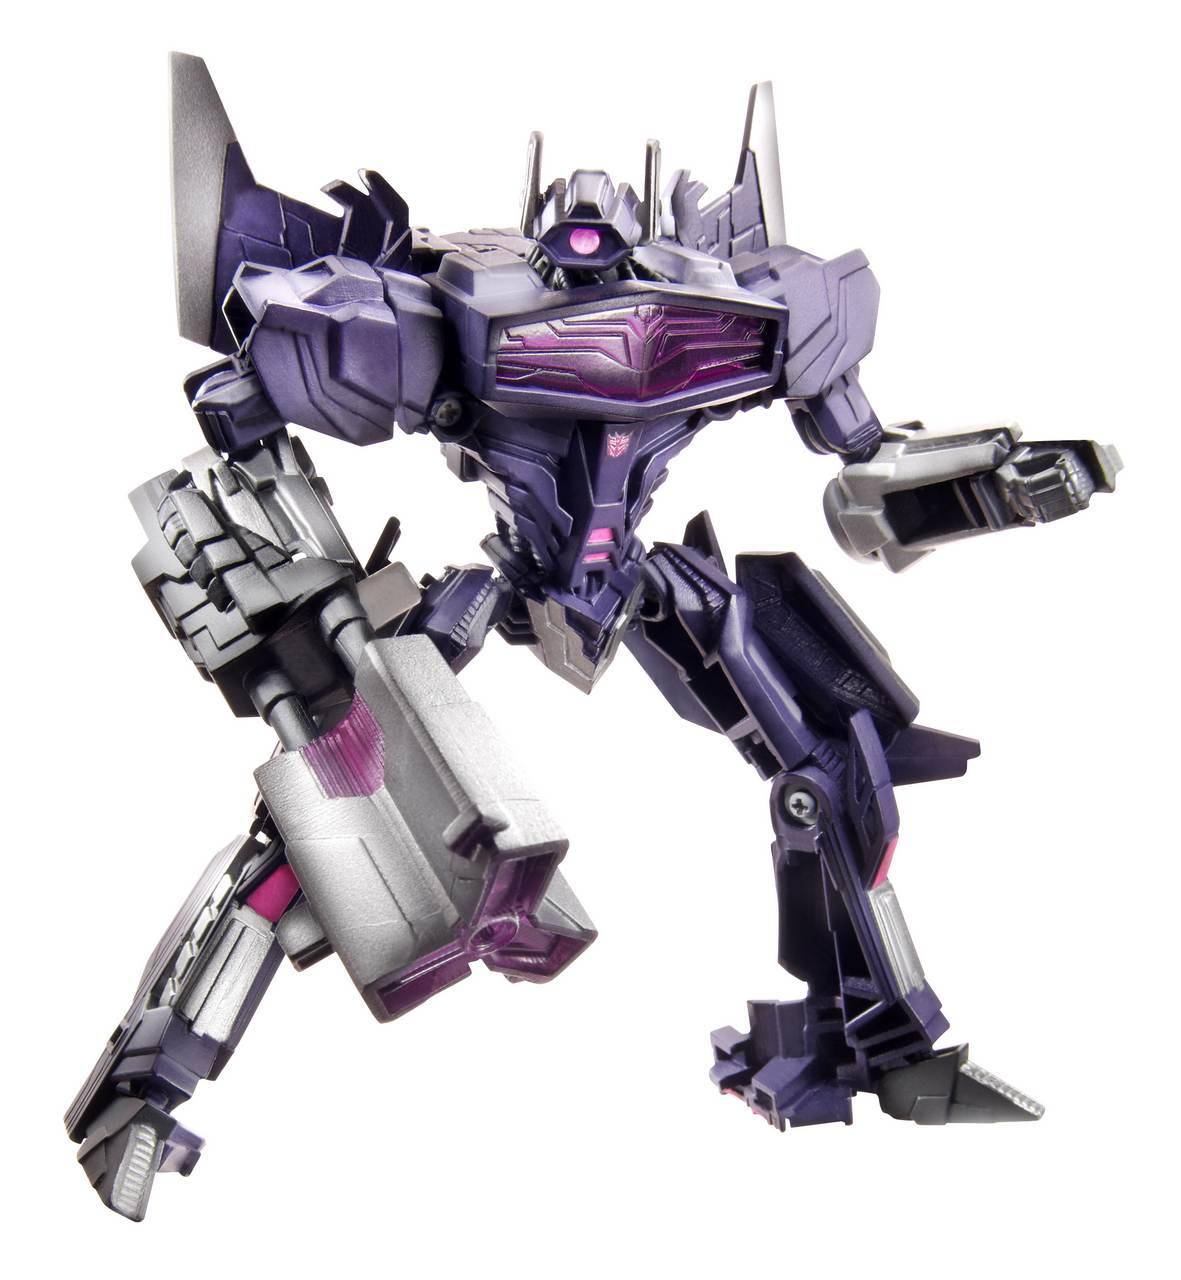 TF-Generations-Deluxe-Shockwave-A0171